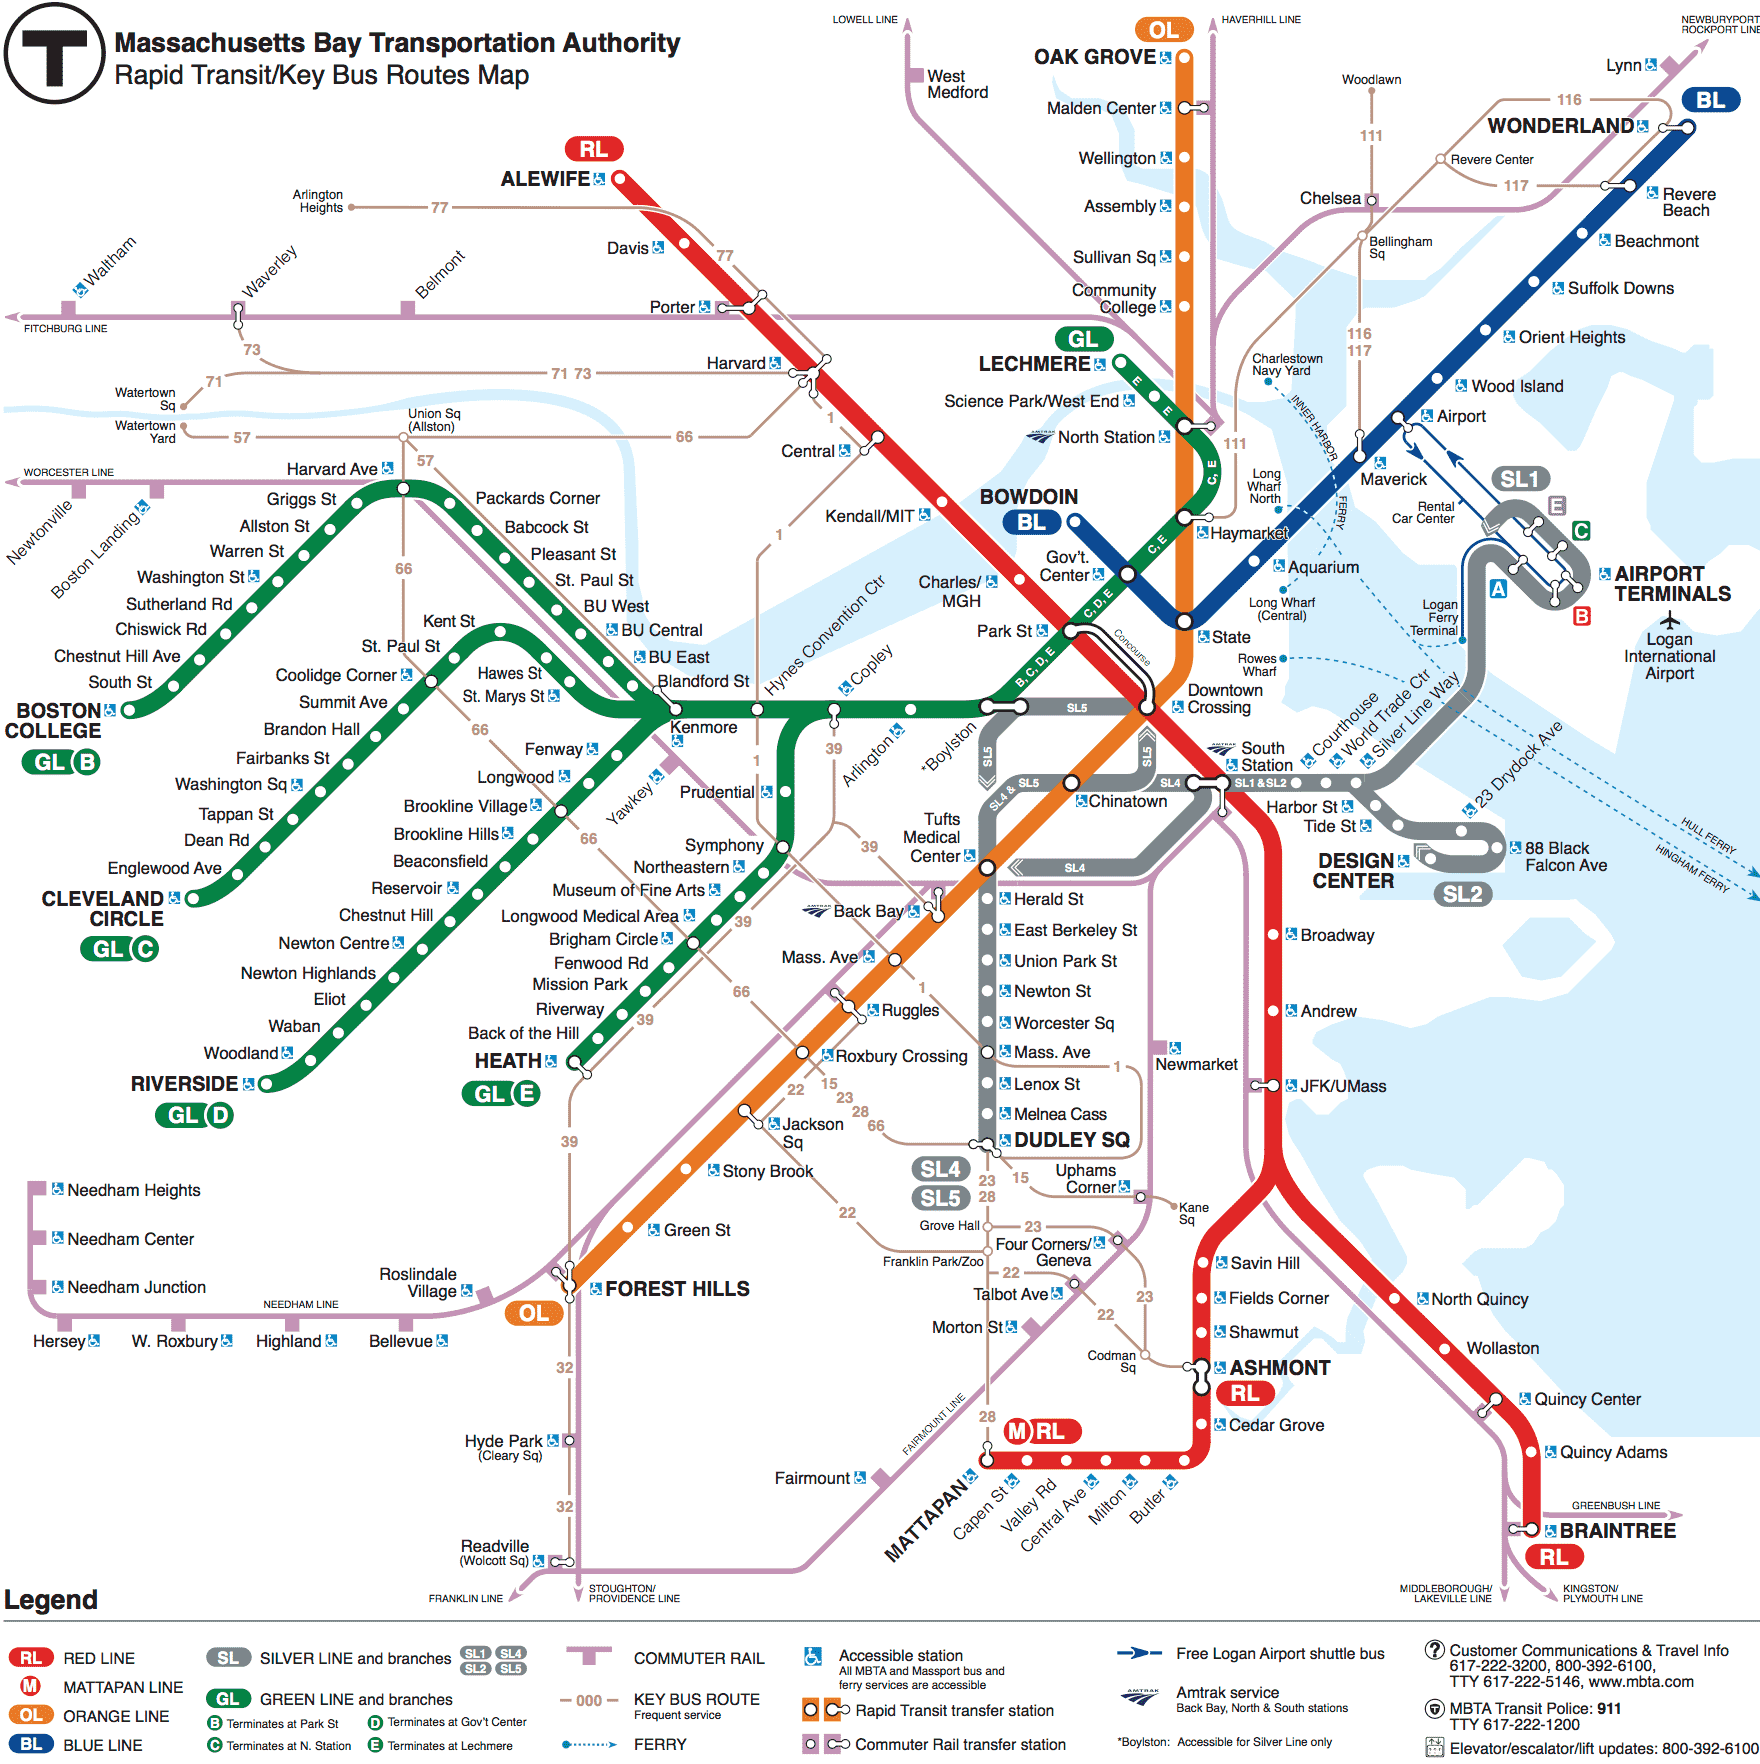 Subway Schedules Maps MBTA Massachusetts Bay - Transit map